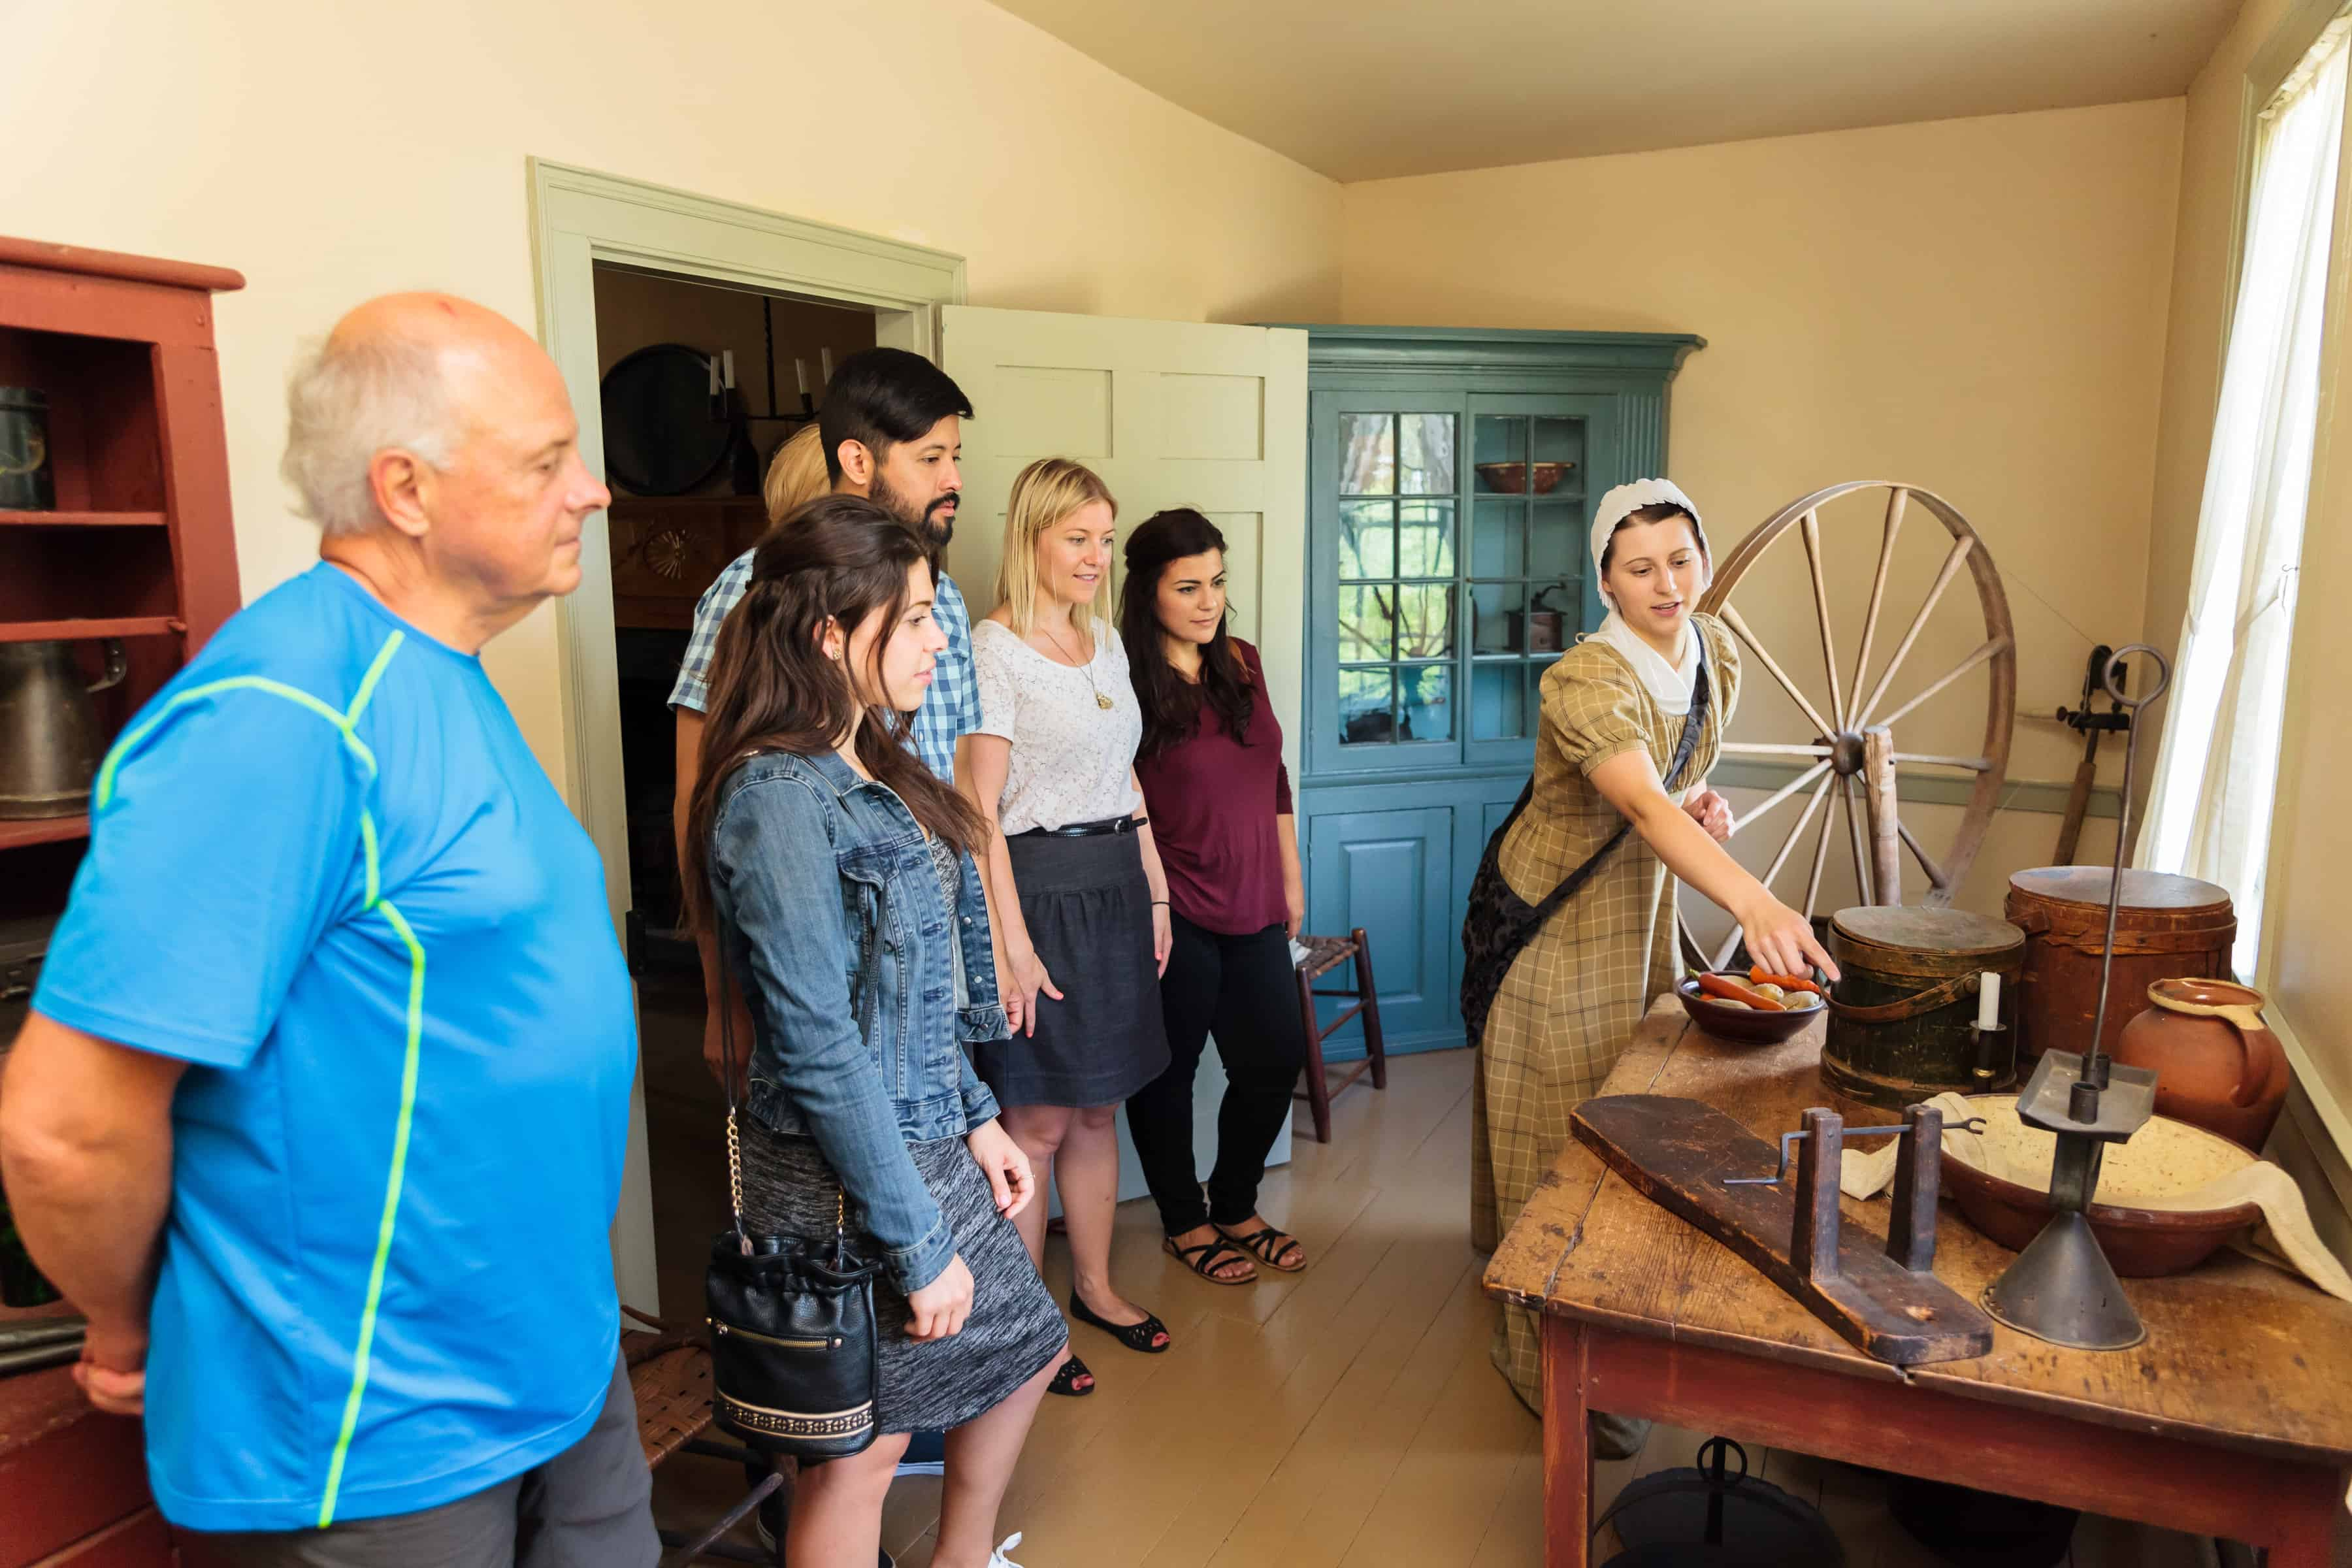 Touring Battlefield House with a costumed interpreter